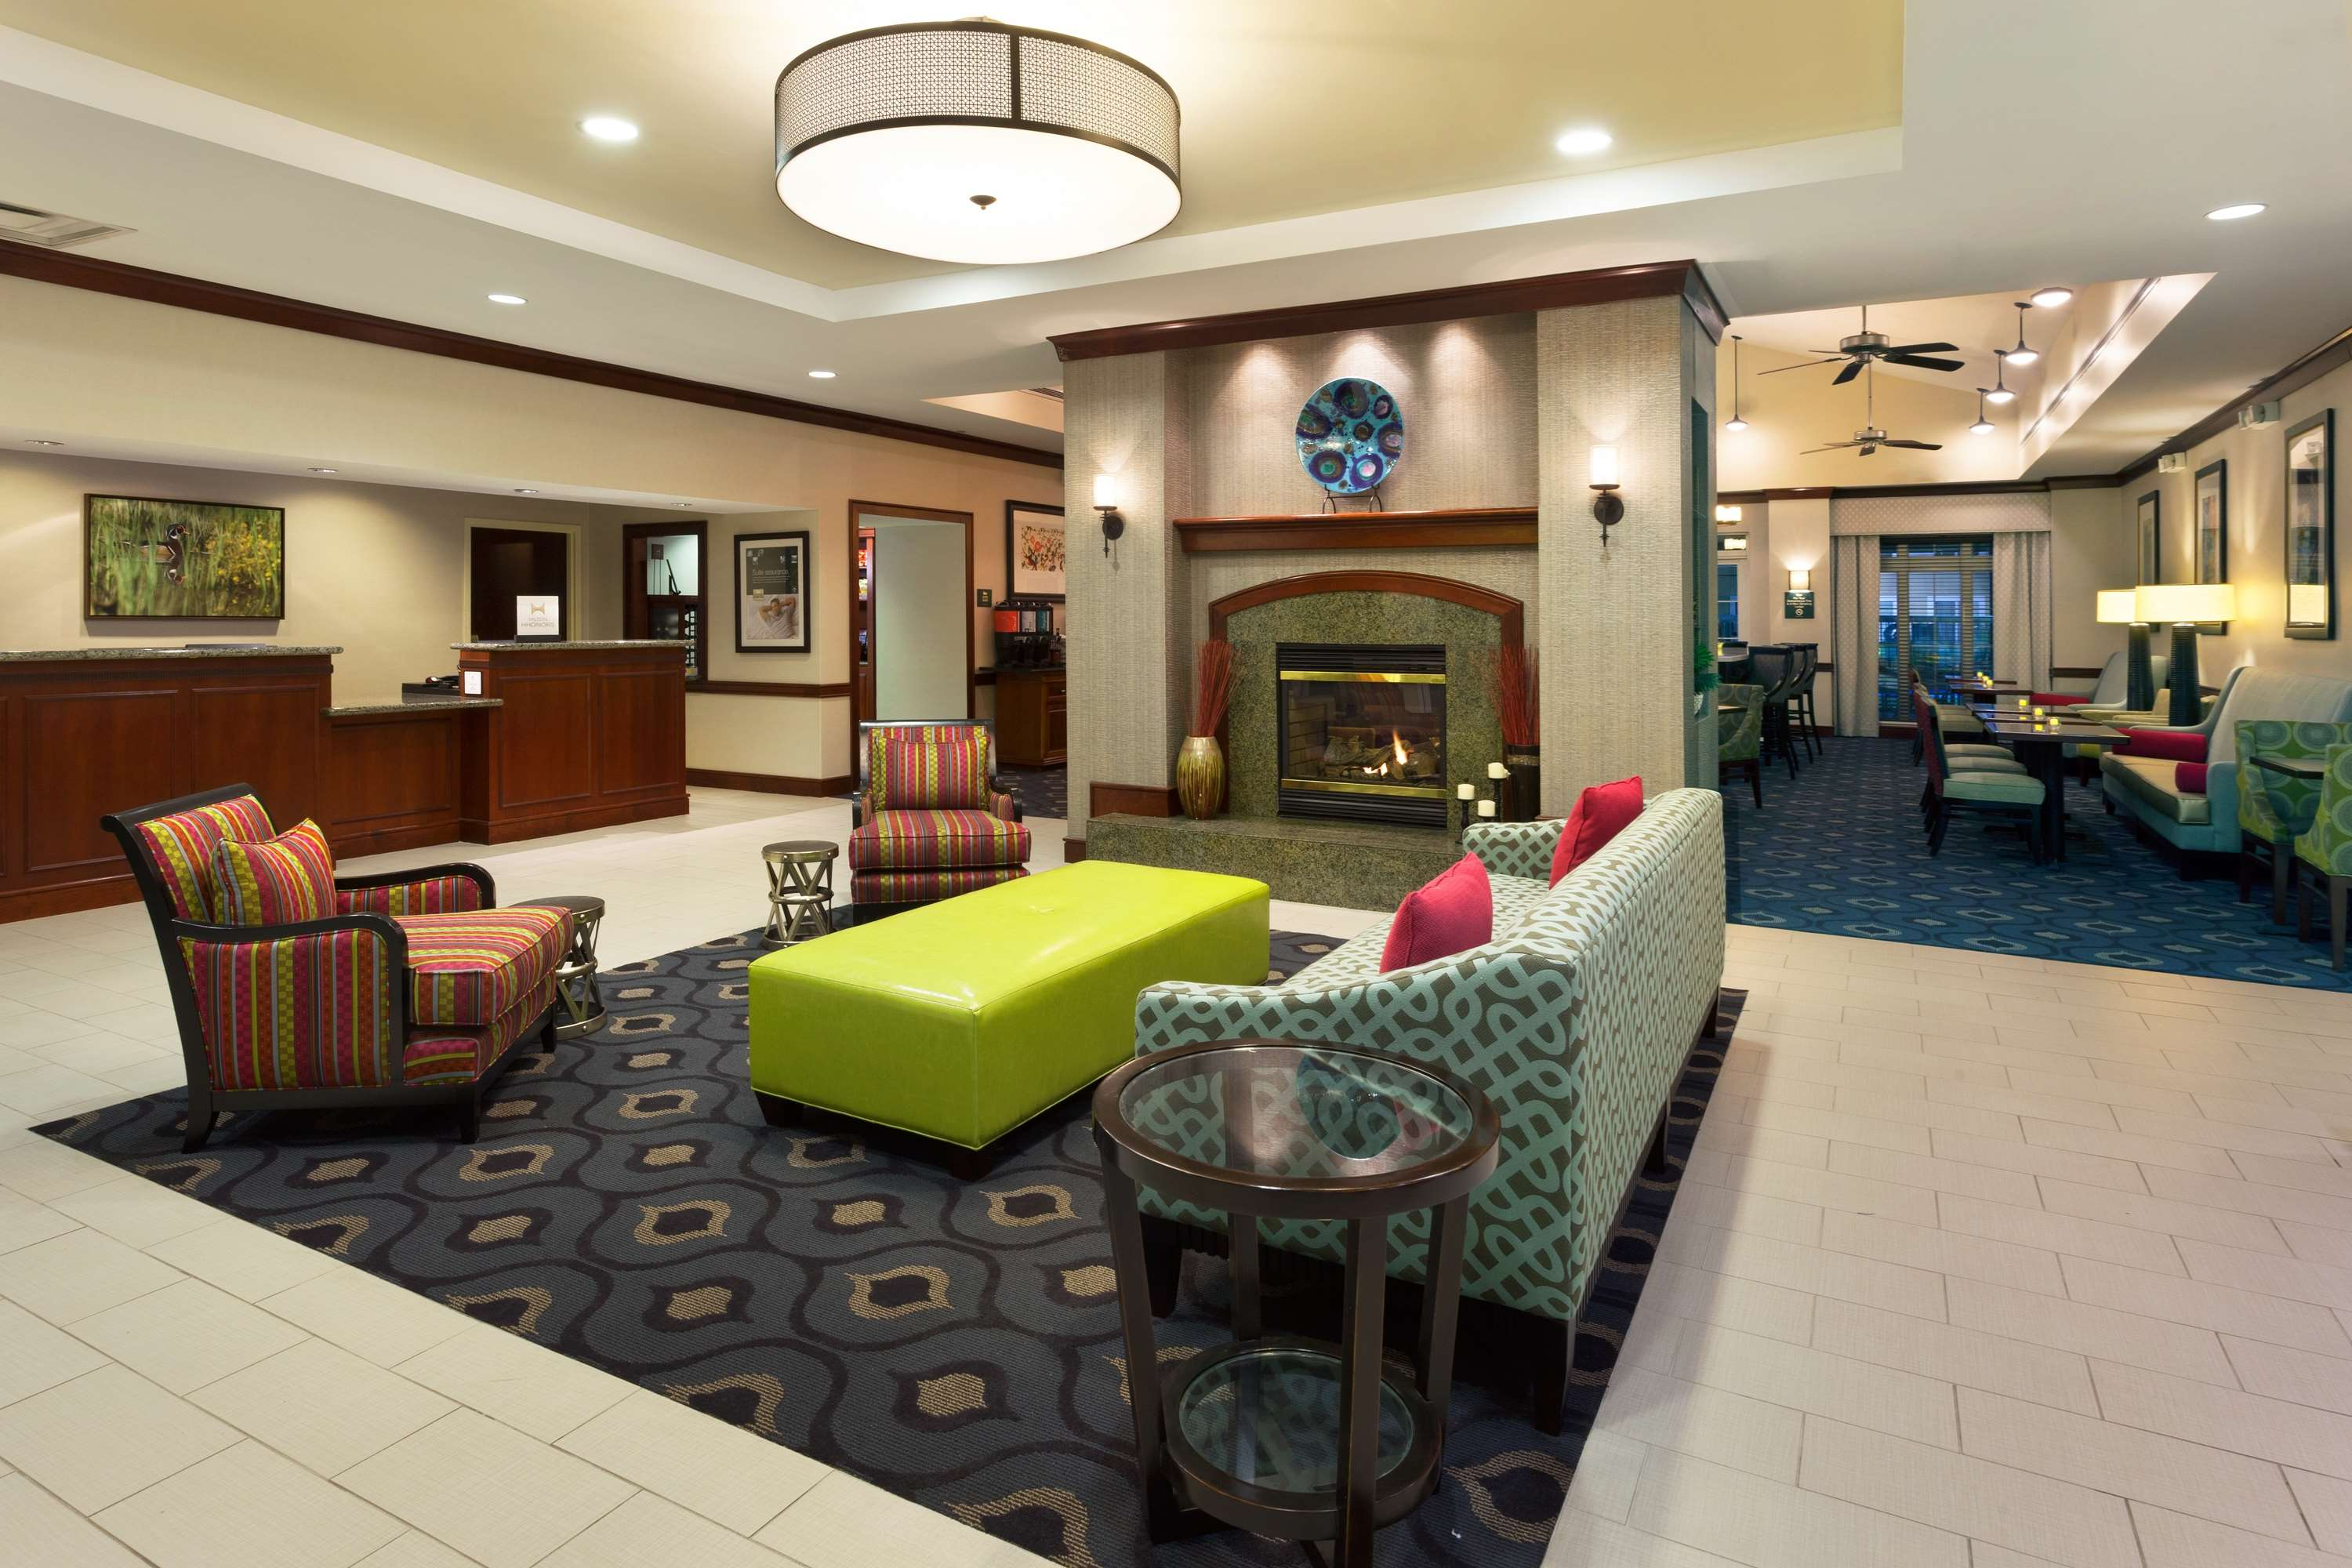 Homewood Suites by Hilton Gainesville image 1